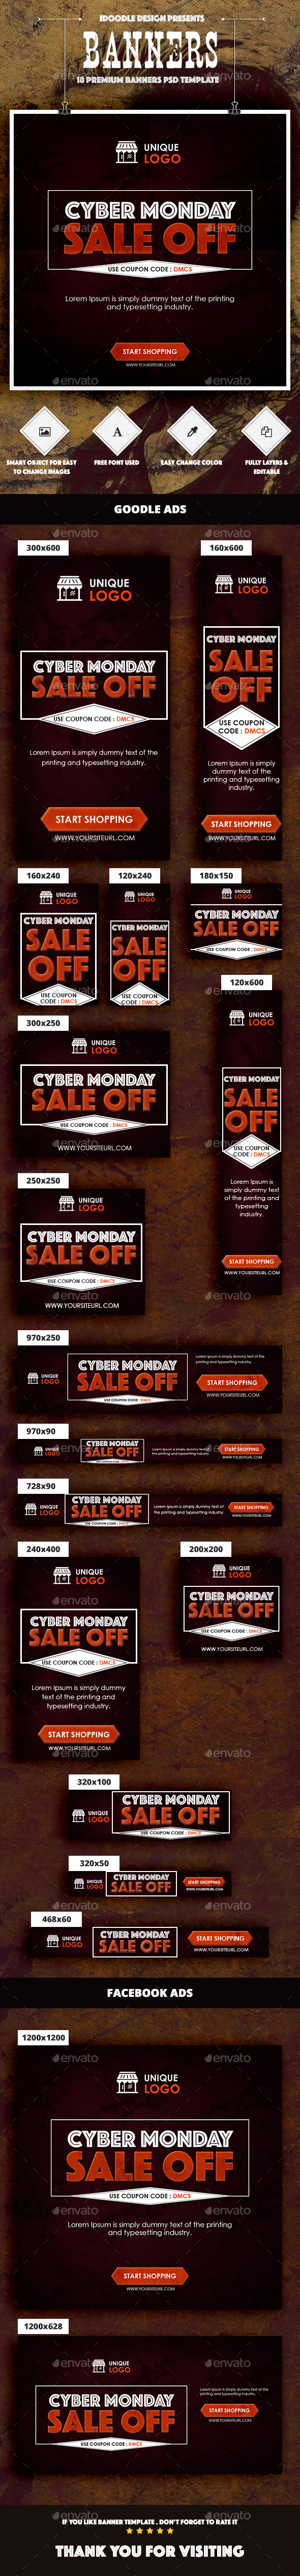 Cyber Monday Banners Ad - Banners & Ads Web Elements